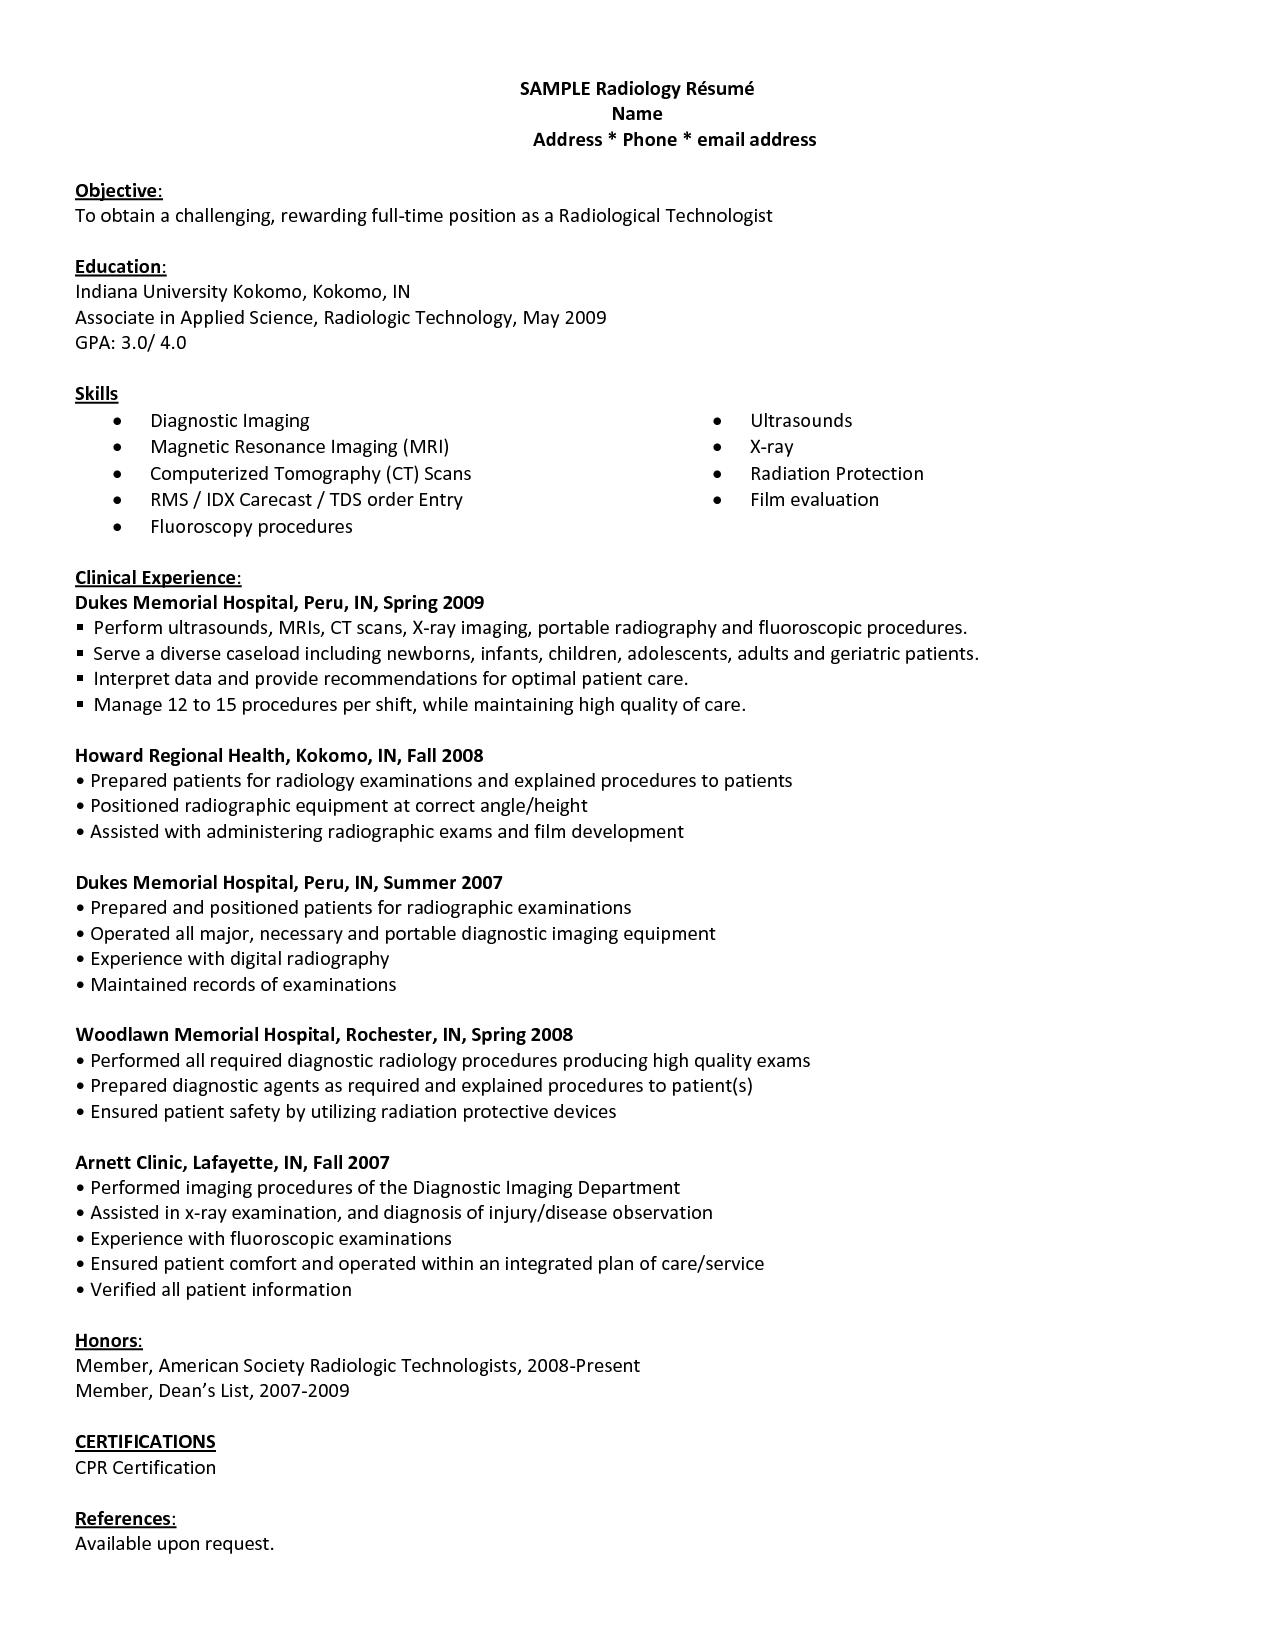 Resume Sample Radiologic Technologist  Radiologic Technologist Resume Examples